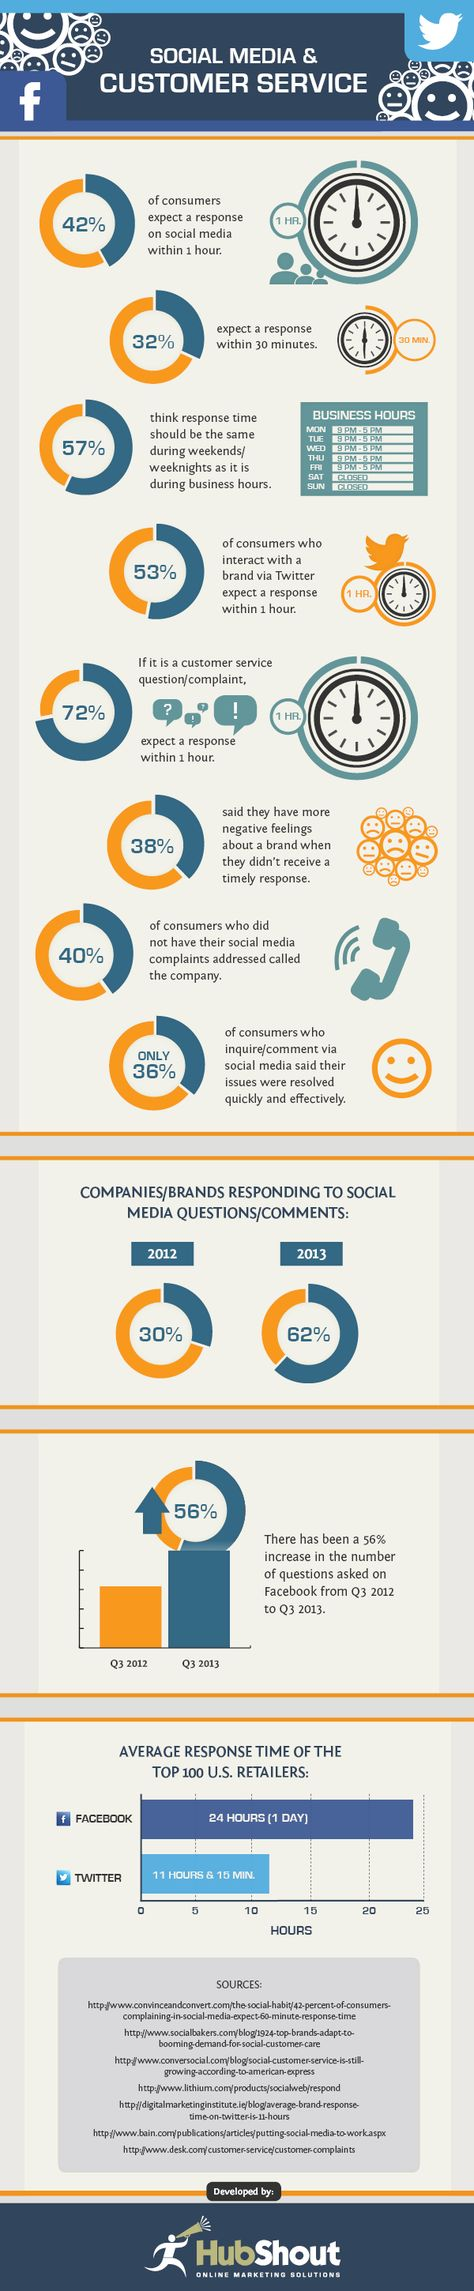 SOCIAL MEDIA -         Social Media And Customer Service #Infographic #SocialMedia #Business